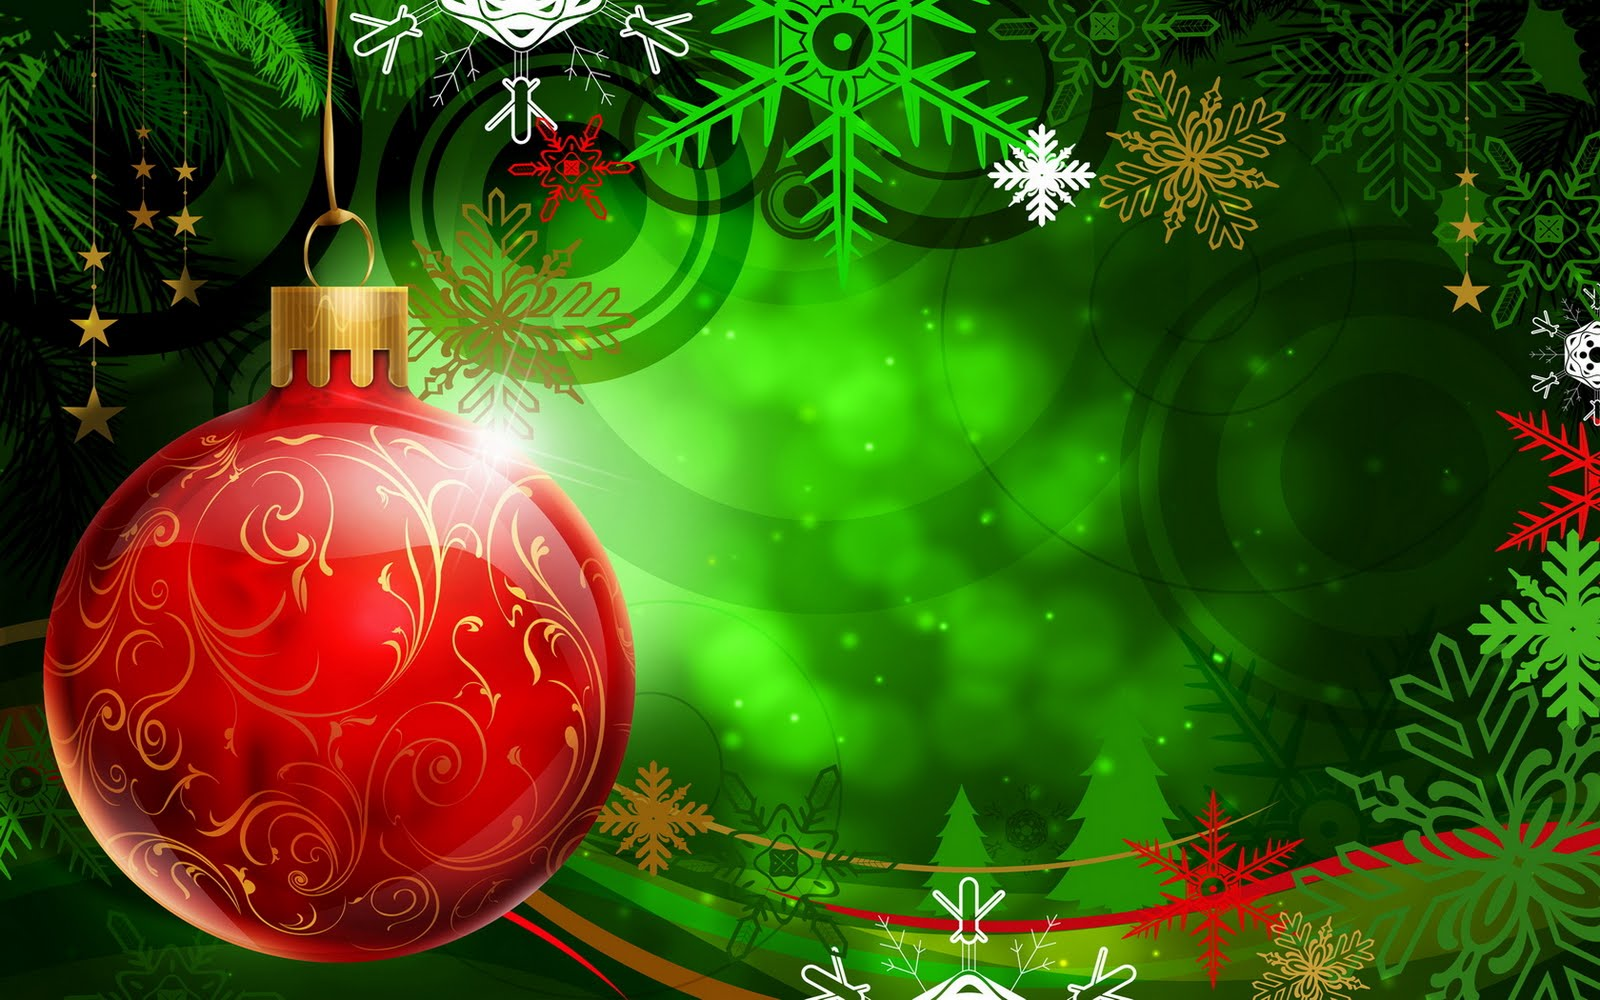 Christmas Wallpapers X mas Backgrounds  Animated 1600x1000